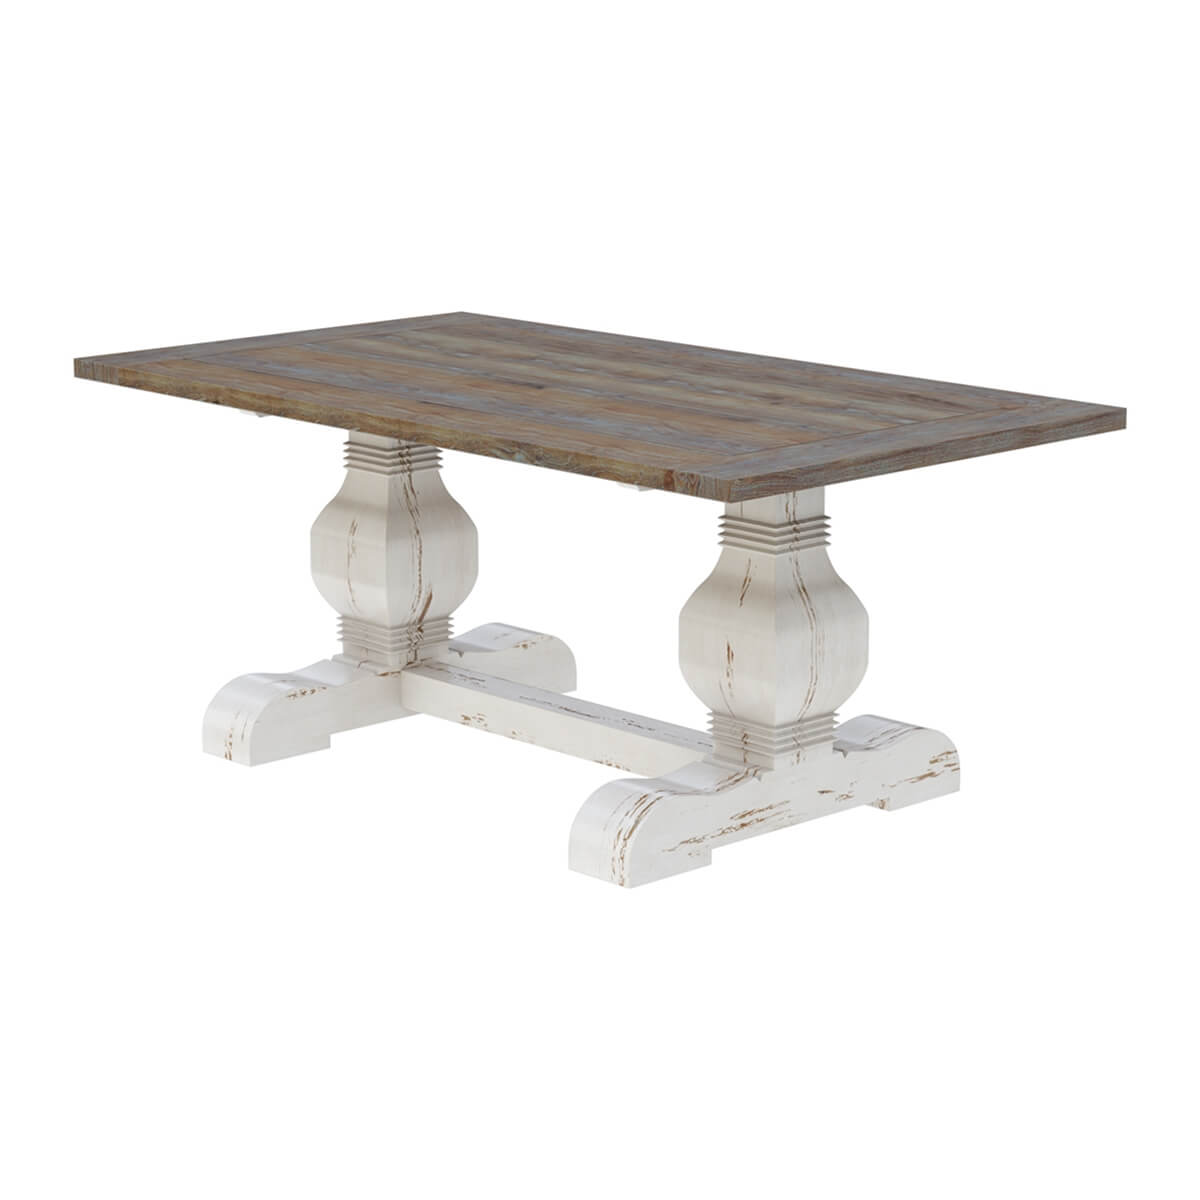 Greenville Farmhouse Two-Tone Teak Wood Trestle Pedestal Dining Table